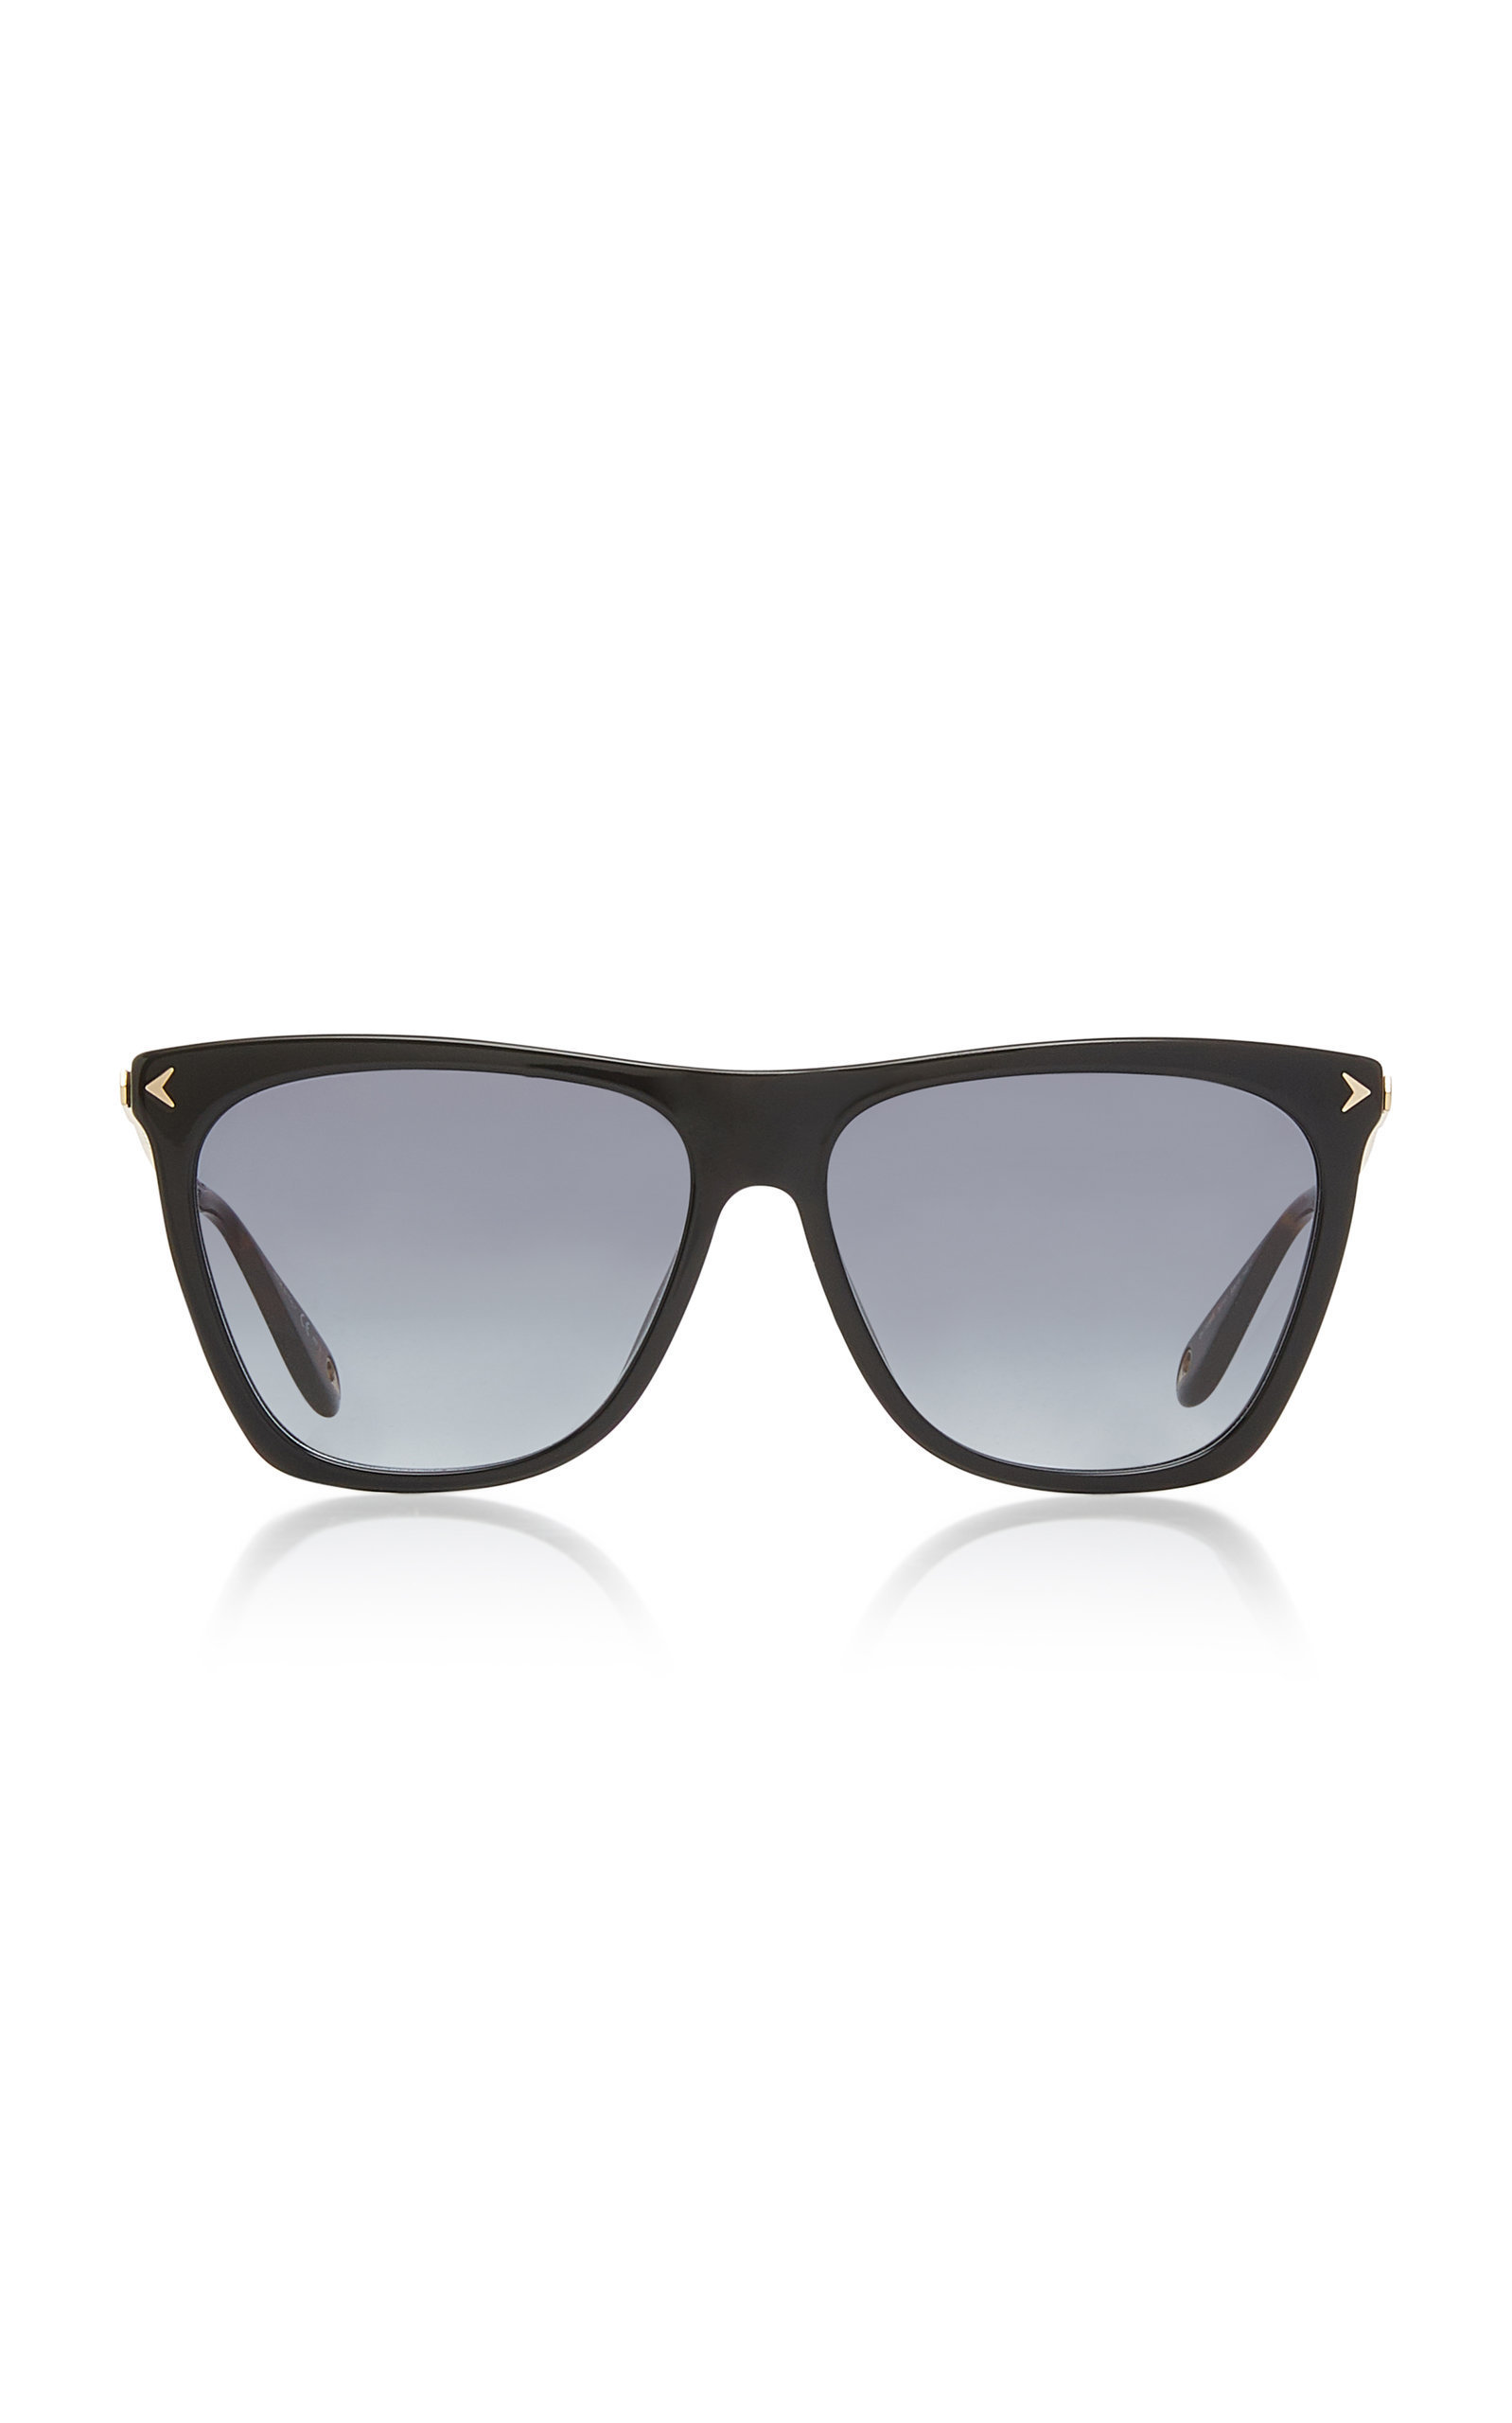 Givenchy Sunglasses | $375